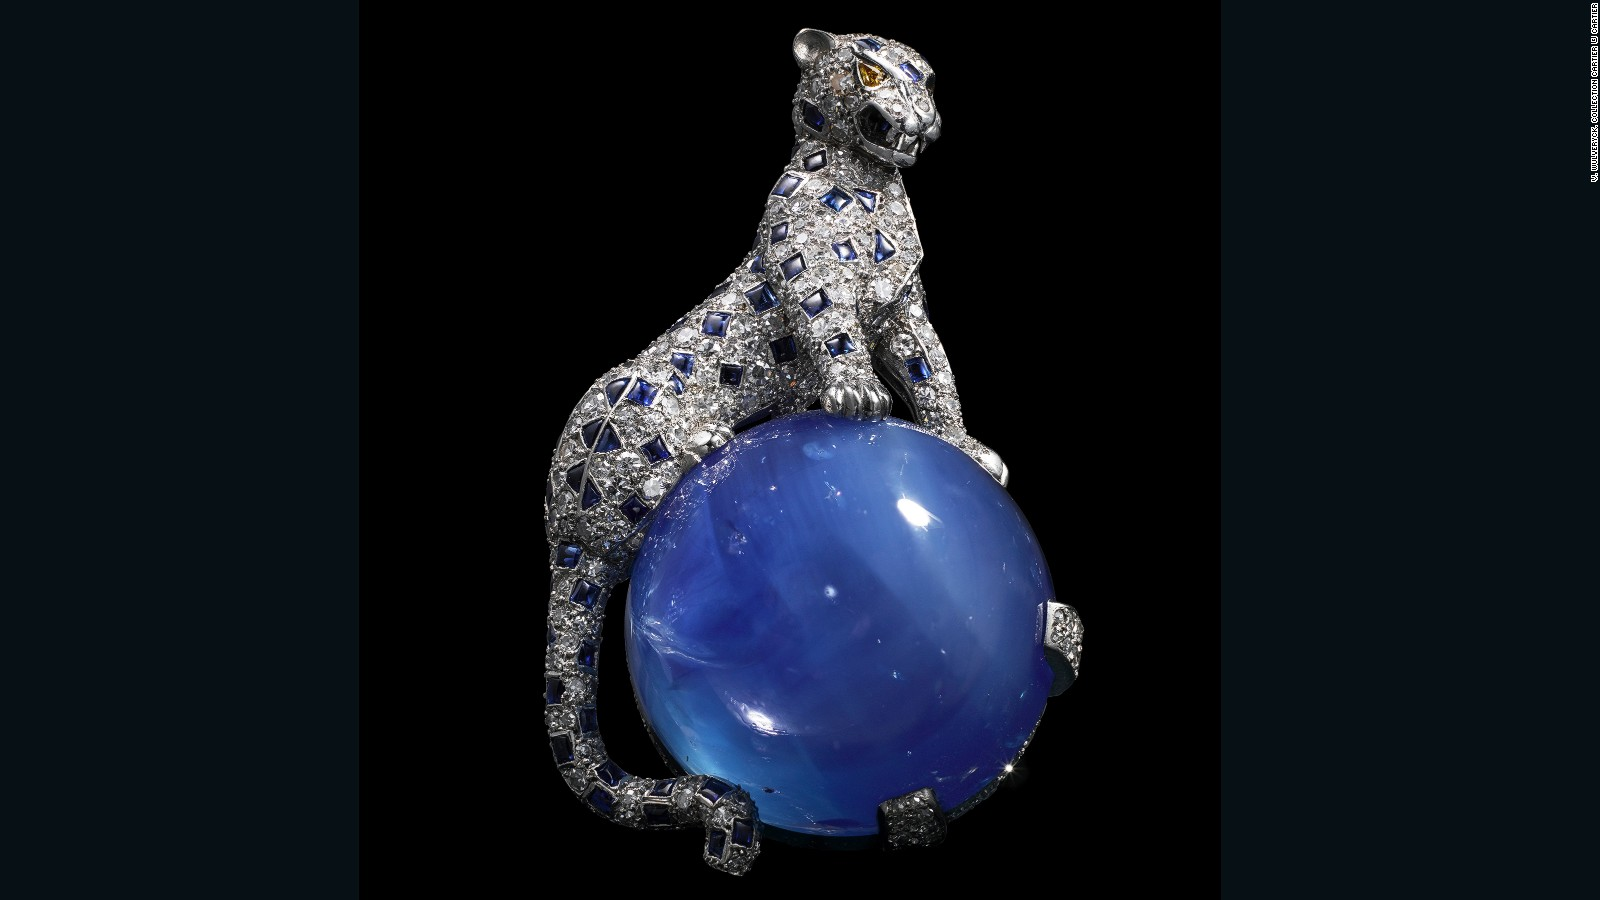 b4474d126c The opulent allure of Cartier s bejeweled panther - CNN Style